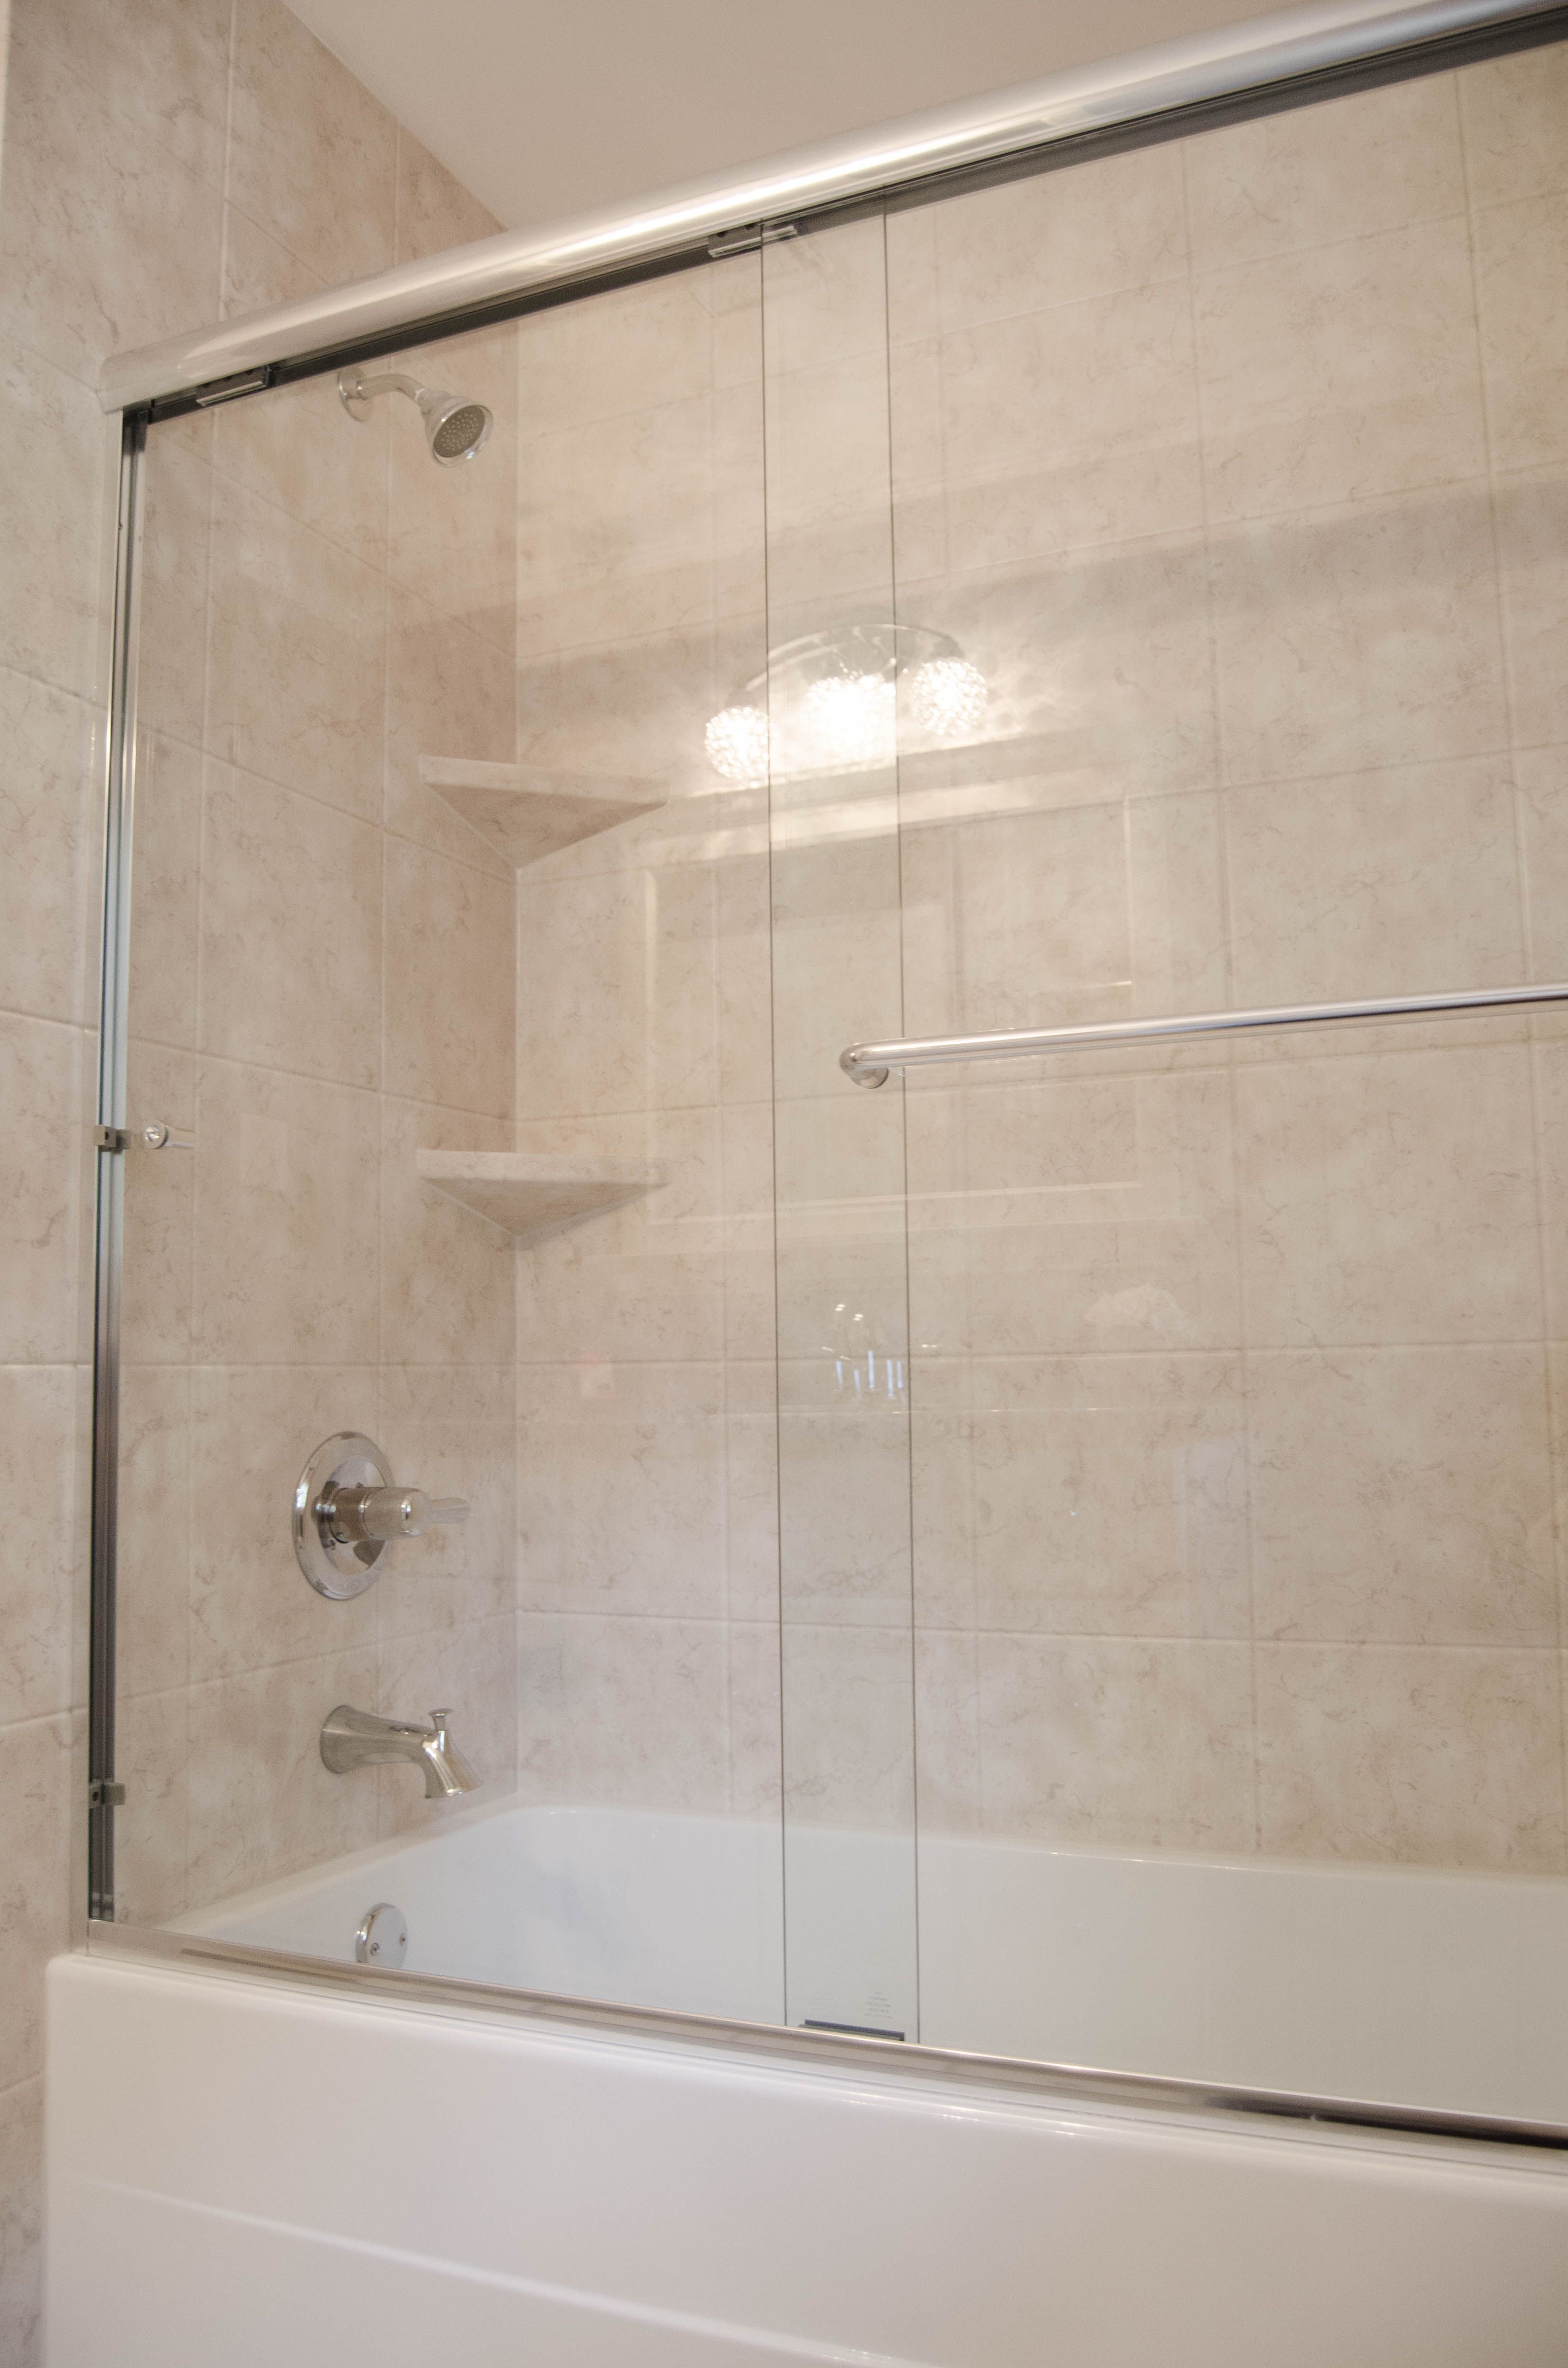 Bathroom Remodel. Large Shower and Tub Remodel. These glass sliding ...